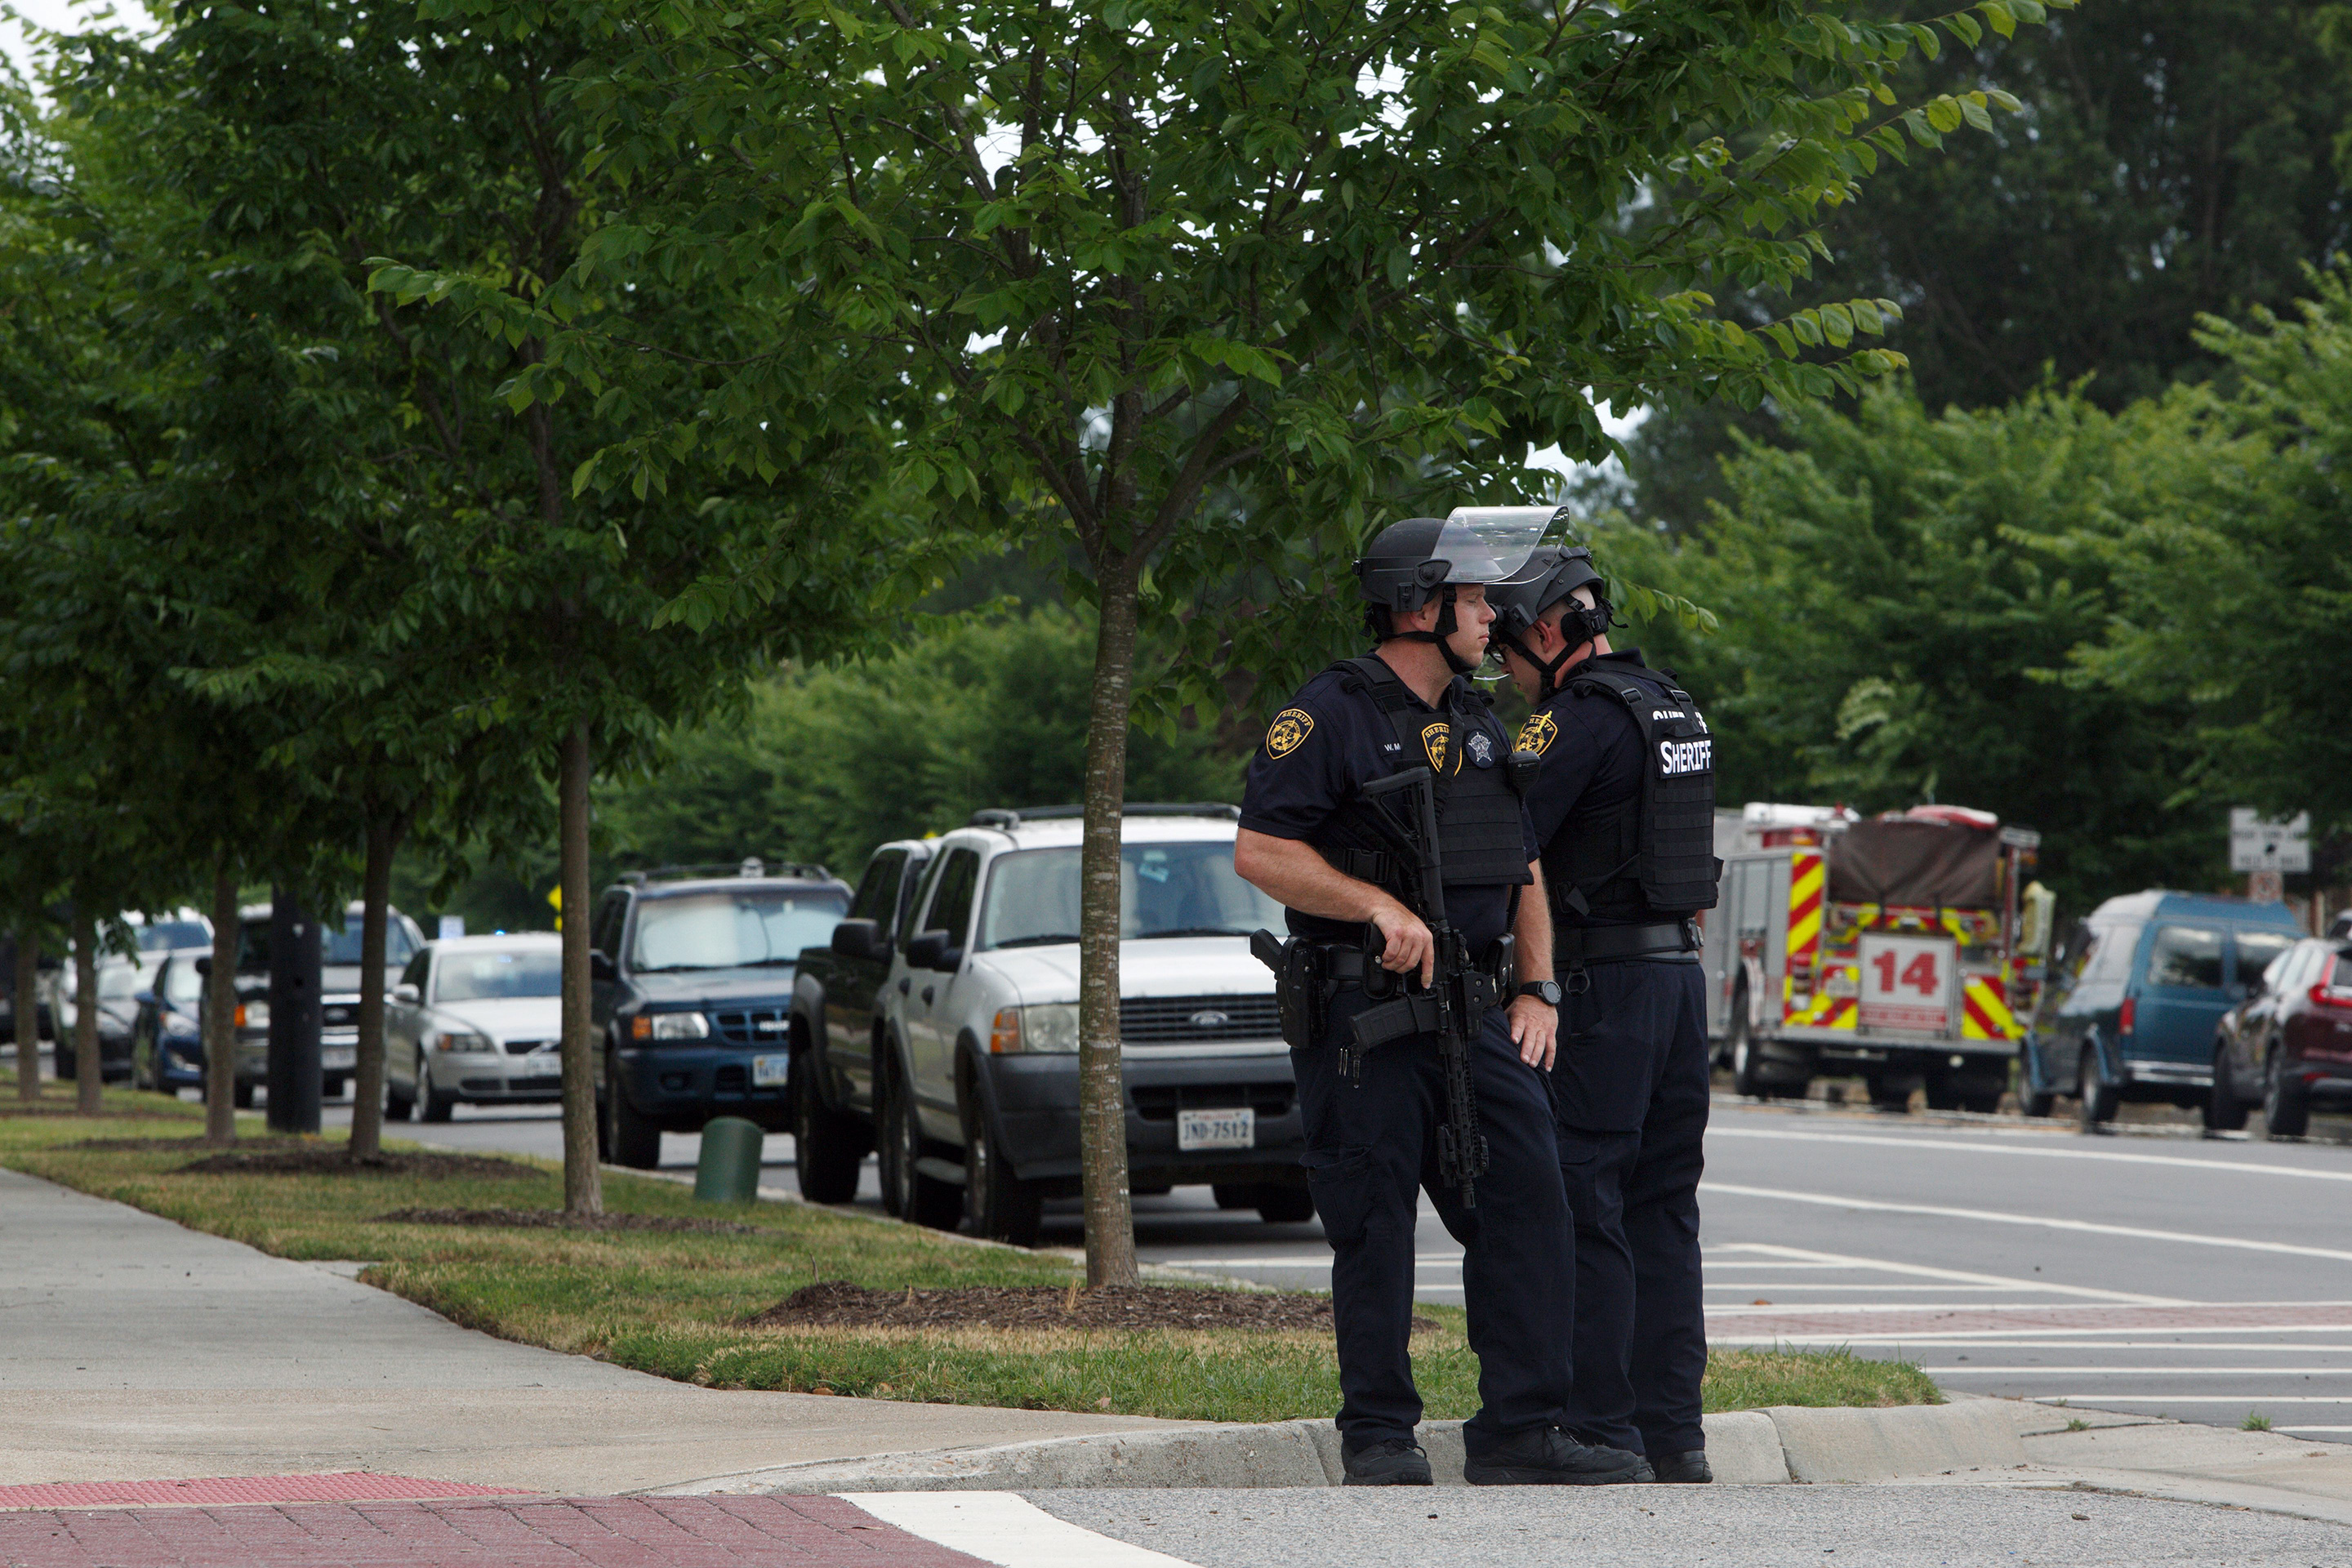 Virginia Beach police officers huddle near the intersection of Princess Anne Road and Nimmo Parkway following a shooting at the Virginia Beach Municipal Center on May 31, 2019.